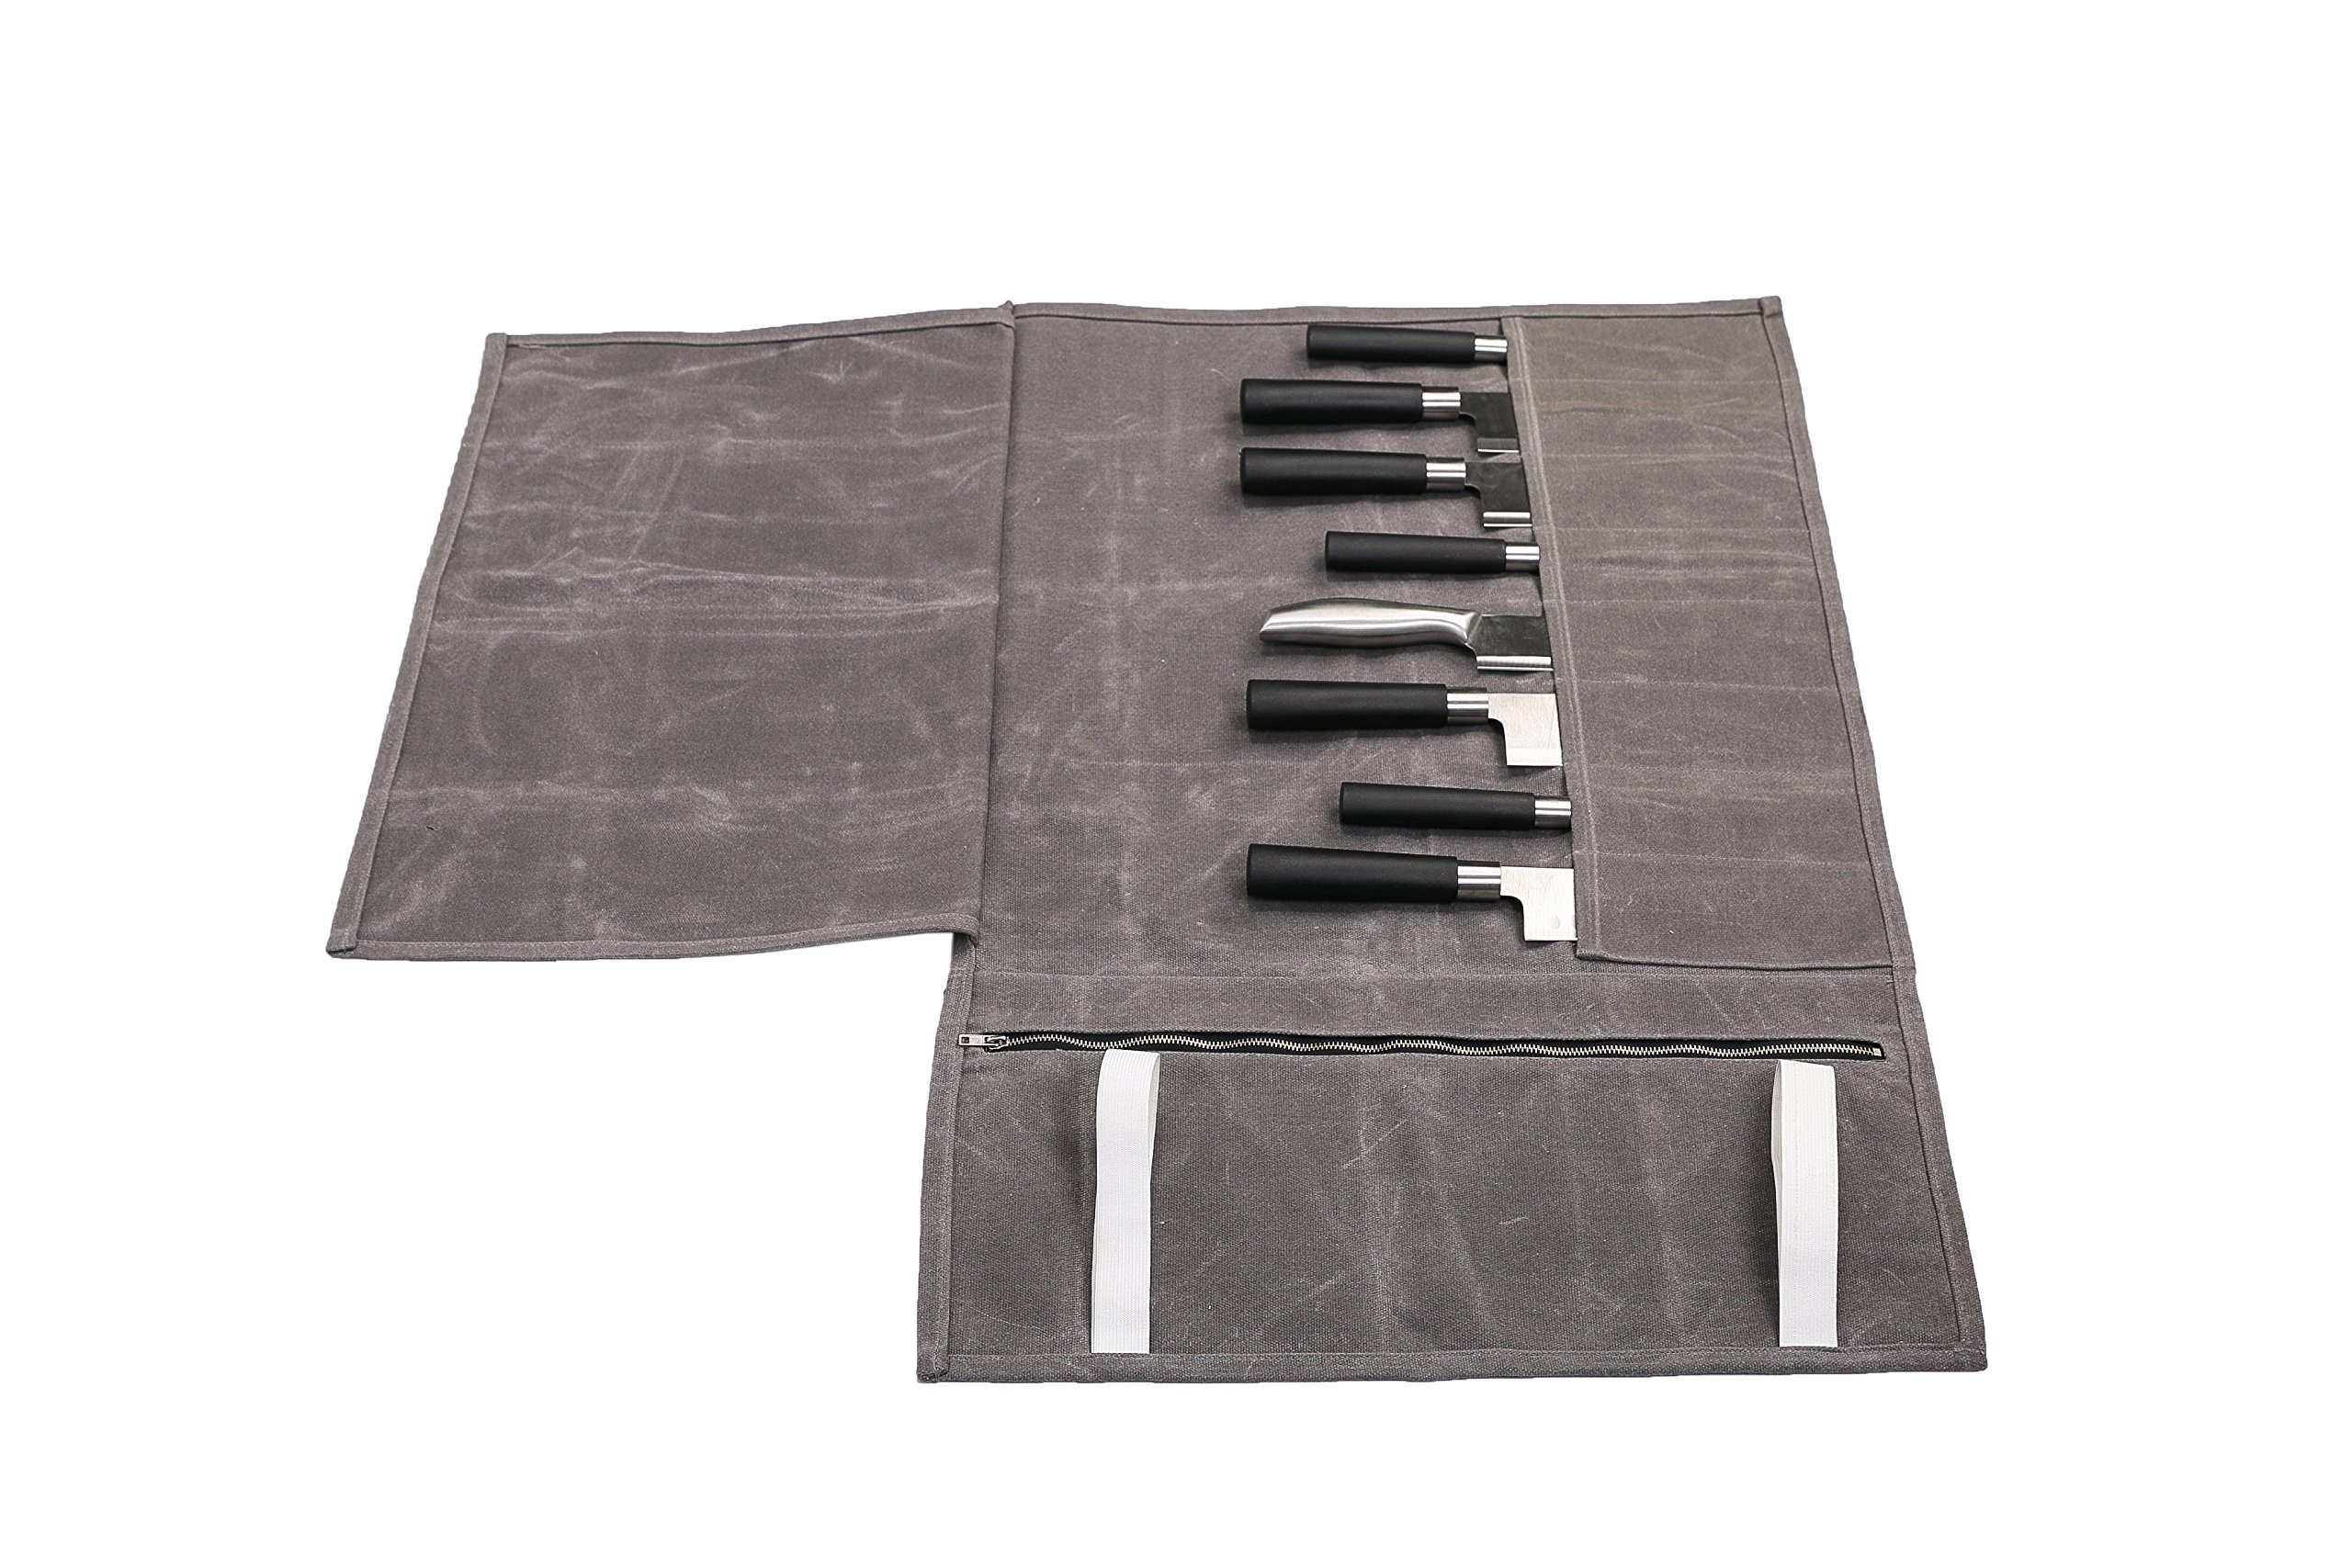 Hersent Waterproof Waxed Canvas Chef's Knife Roll Up Storage Bag with 8 Slots Portable Travel Chef Knife Case Carrier Stores Up 8 Knives Plus a Zipper Pocket for Kitchen Utensils HGJ17-C-US by Hersent (Image #6)